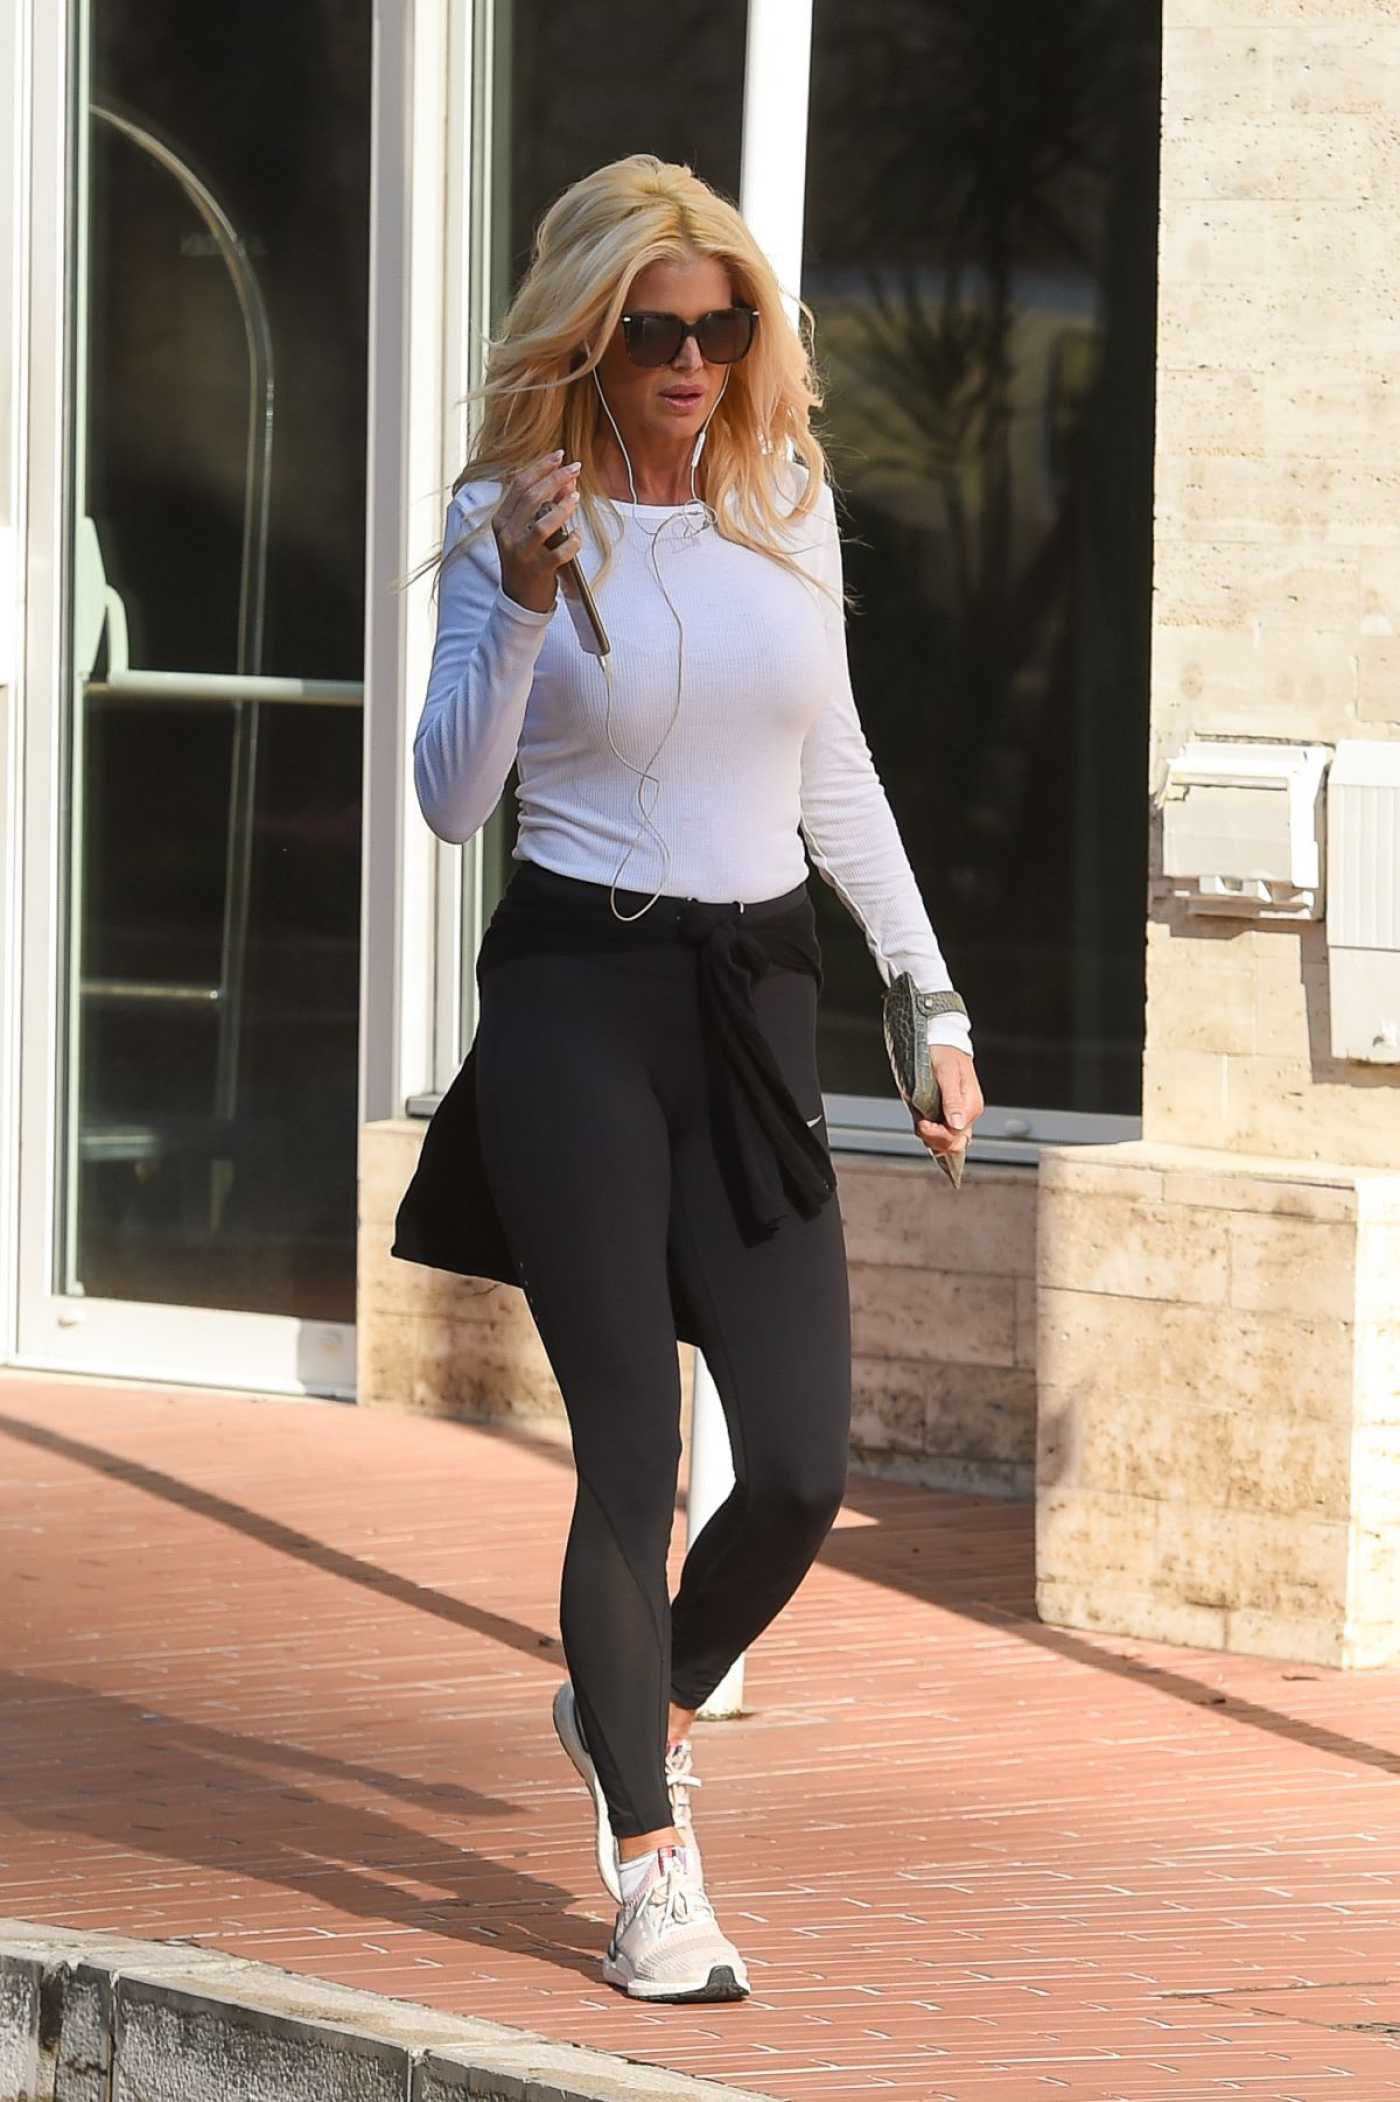 Victoria Silvstedt in a Black Leggings Was Seen Out in Monaco 04/07/2020